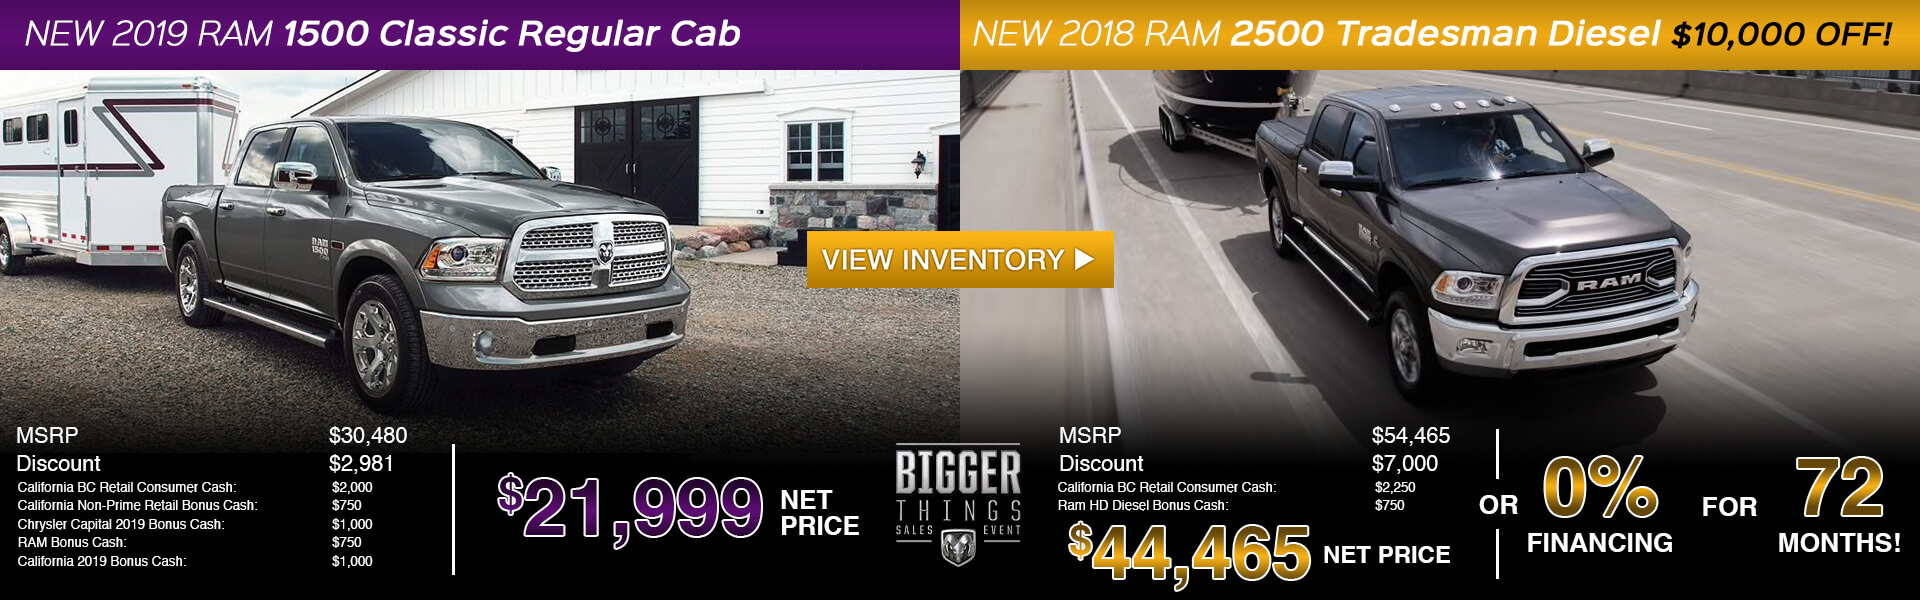 1 Used 2010 Jeep cars, trucks, and SUVs in Stock Serving Stockton